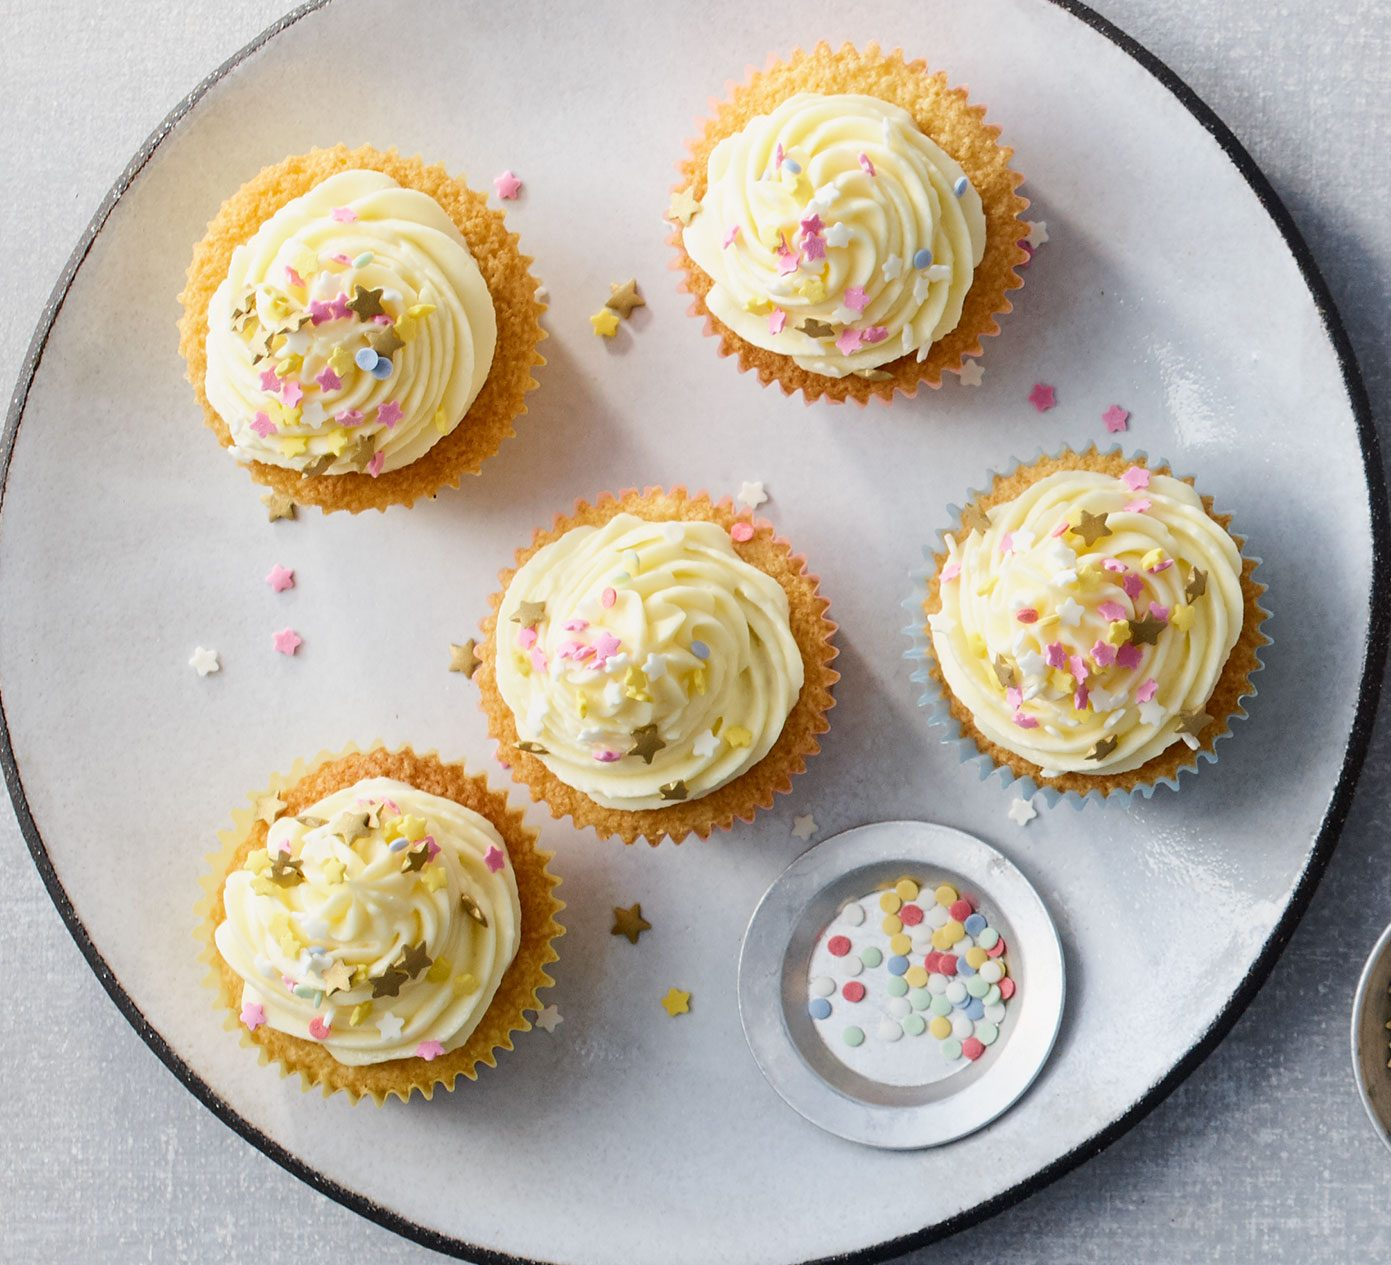 Cream cheese frosting image